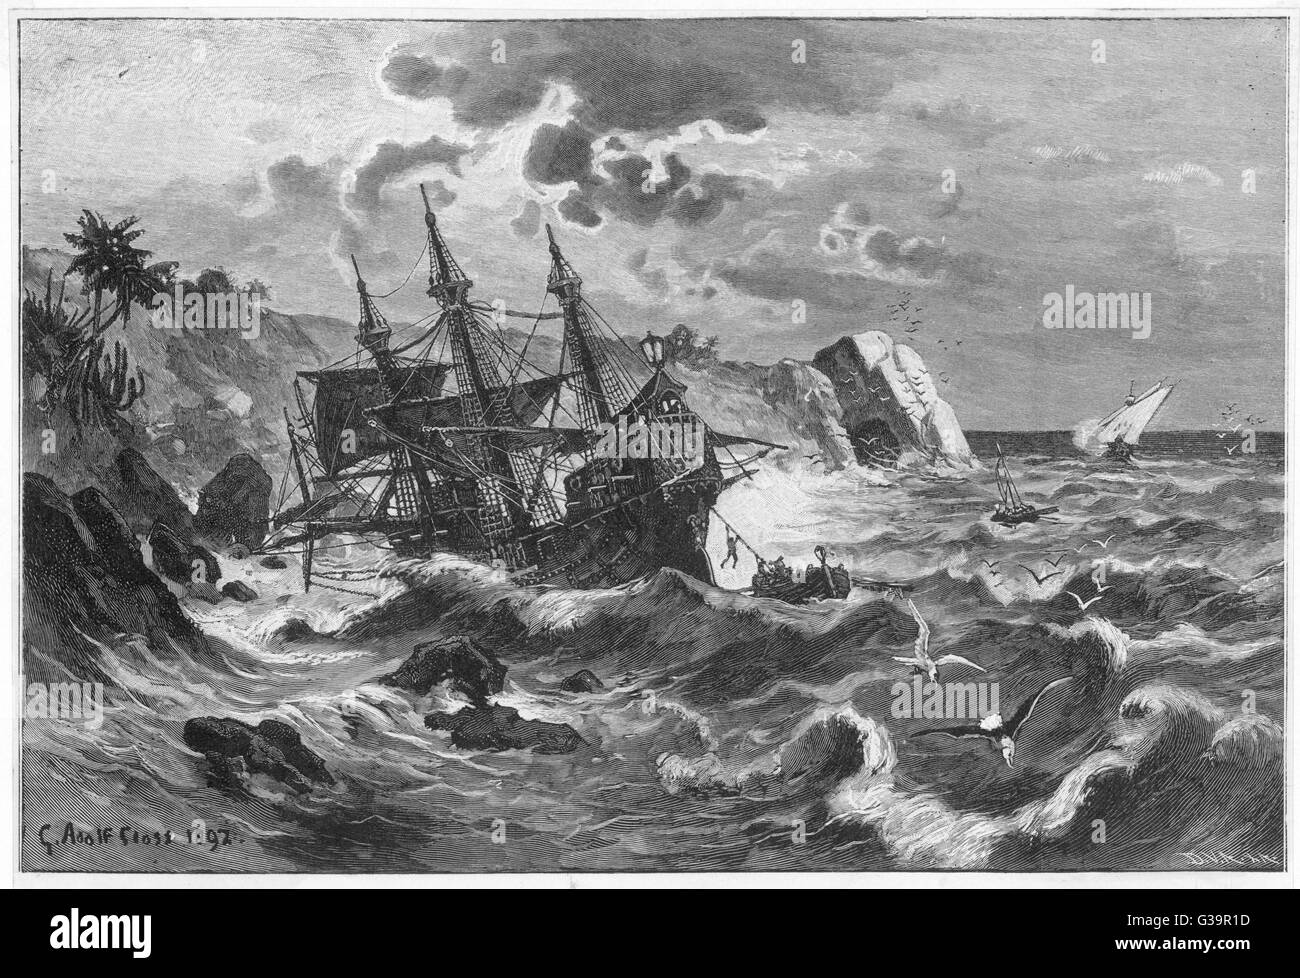 The wreck of the caravel  'Santa Maria', Columbus's  ship, on the coast of  Hispaniola, also known as - Stock Image